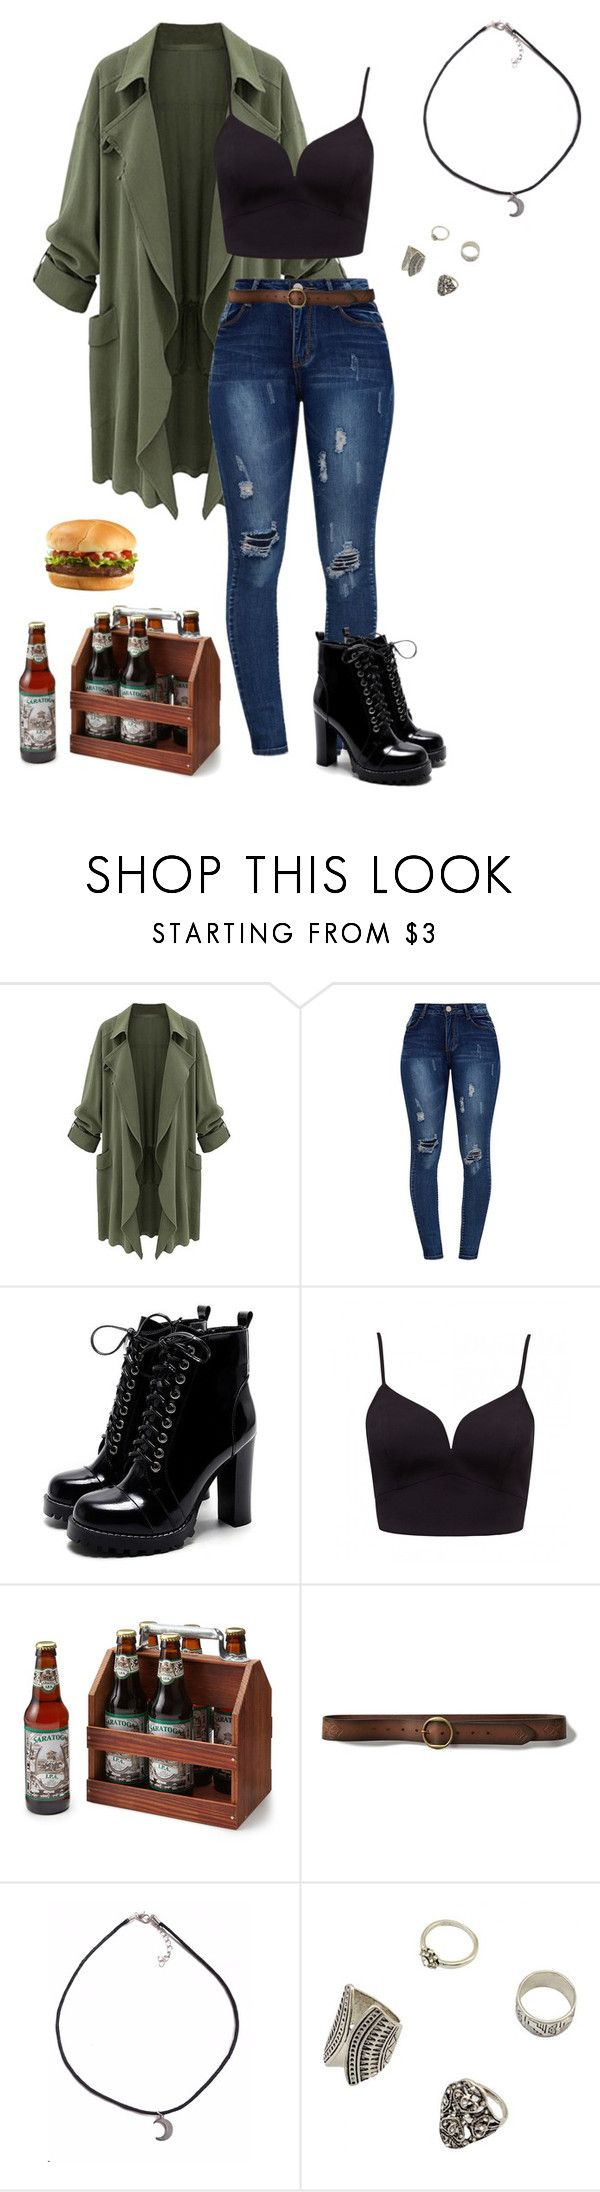 """""""Oversized Coat"""" by gone-girl ❤ liked on Polyvore featuring Abercrombie & Fitch"""